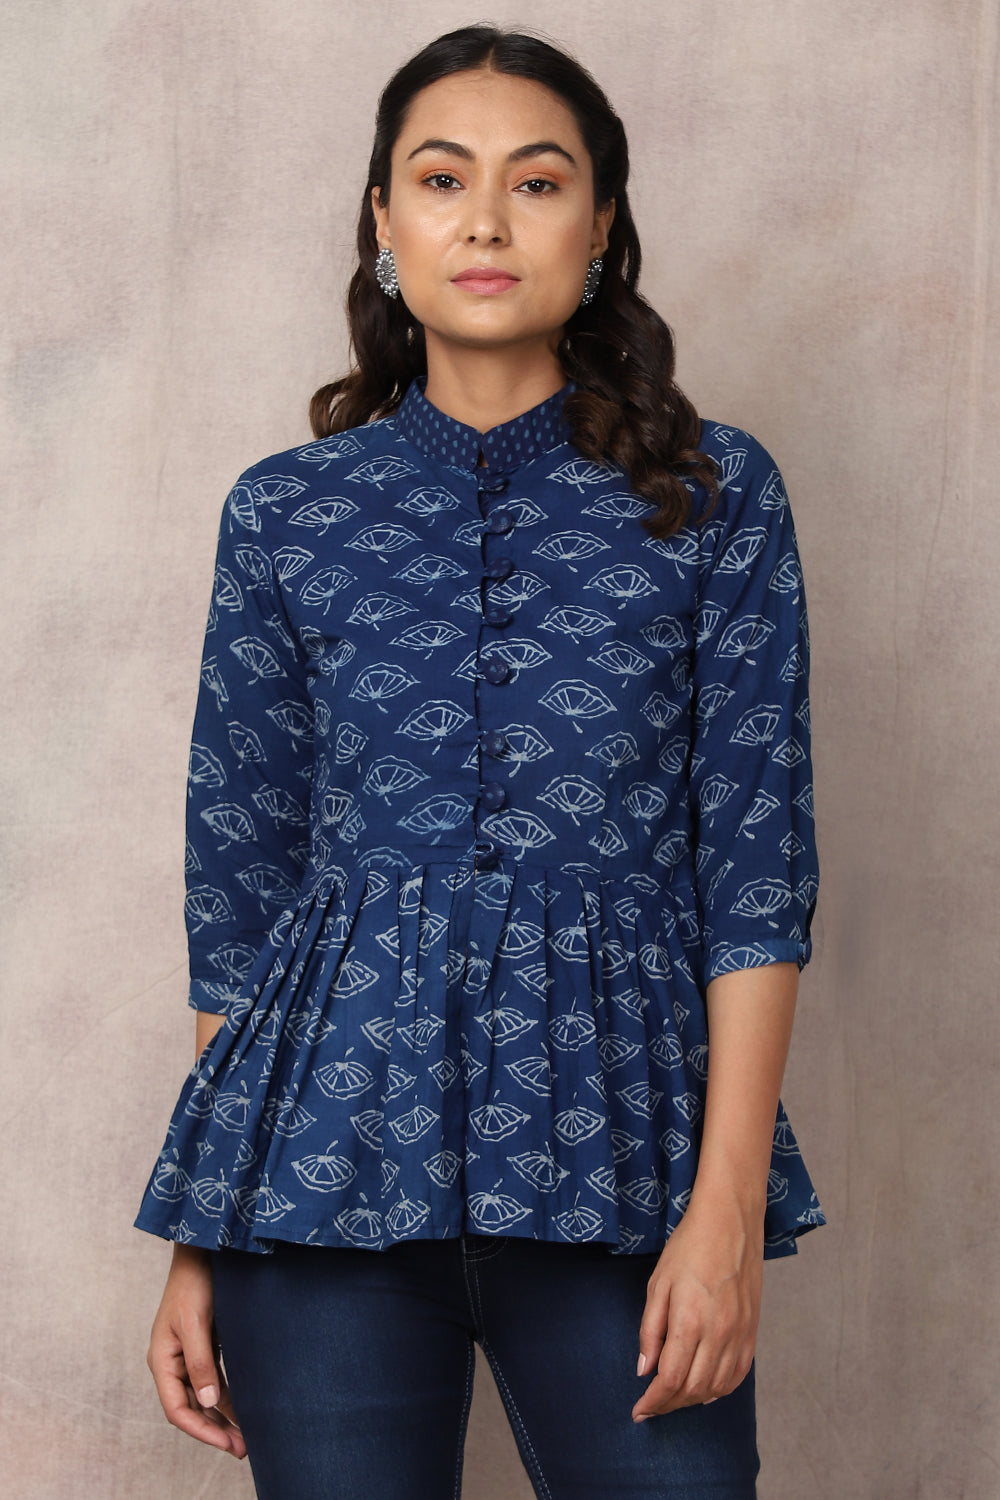 Indigo Dabu Hand Block Print Cotton Top - GleamBerry